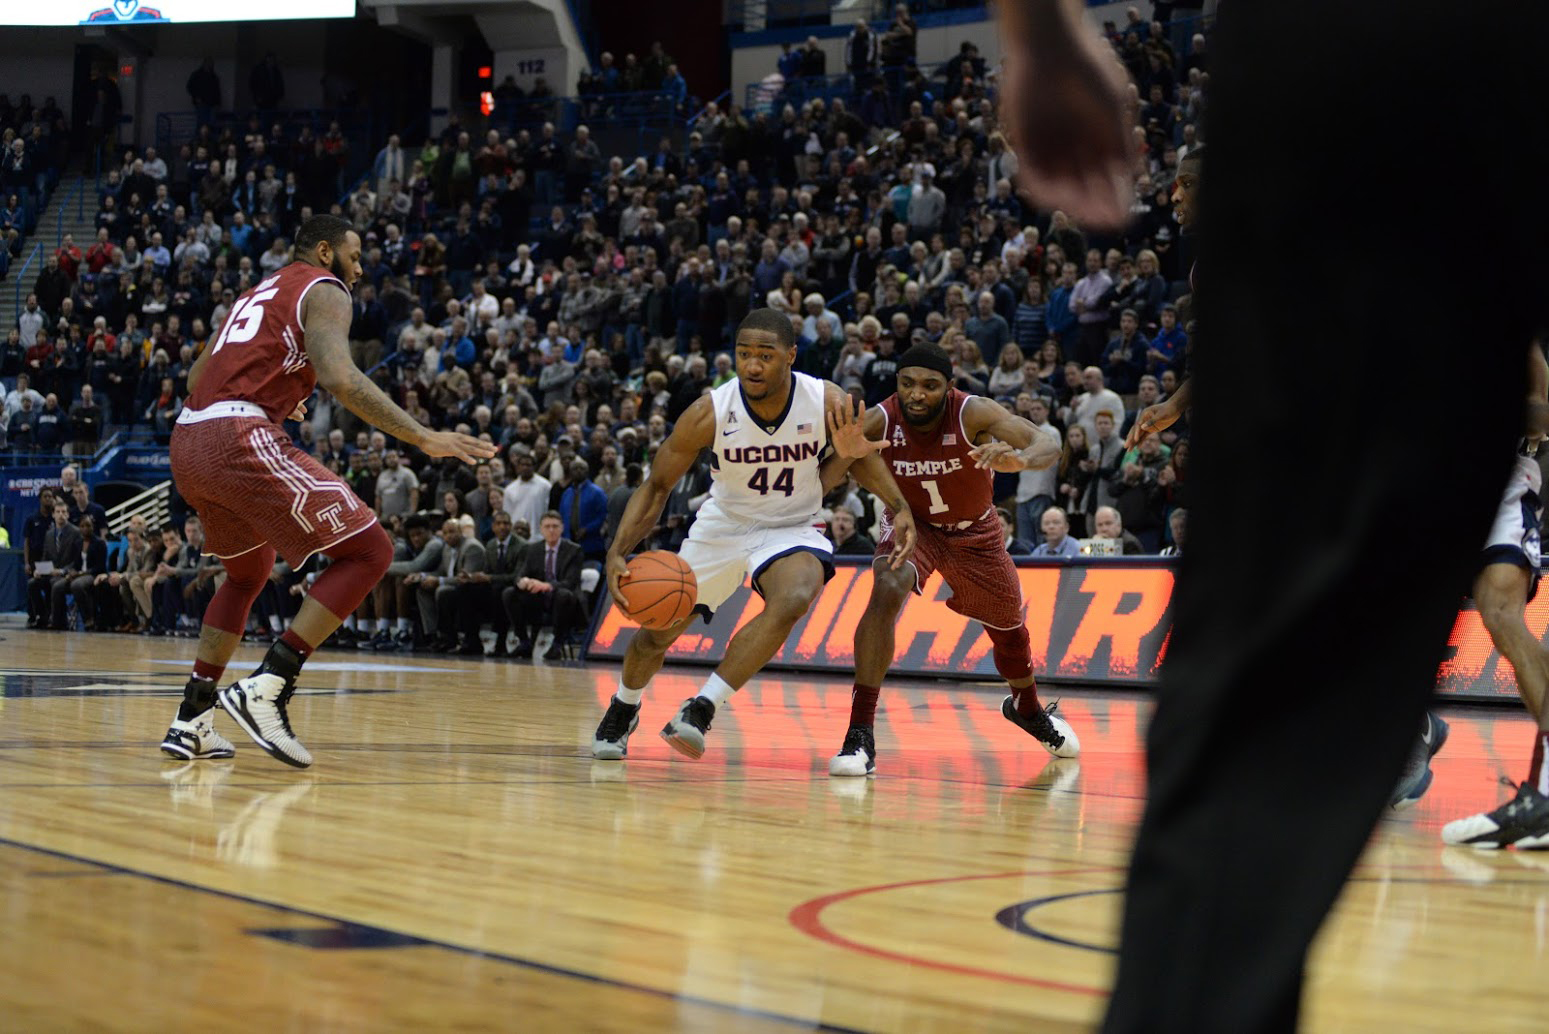 UConn guard Rodney Purvis attacks the basket during their loss to Temple. Purvis finished with 11 points. (Ashley Maher/The Daily Campus)